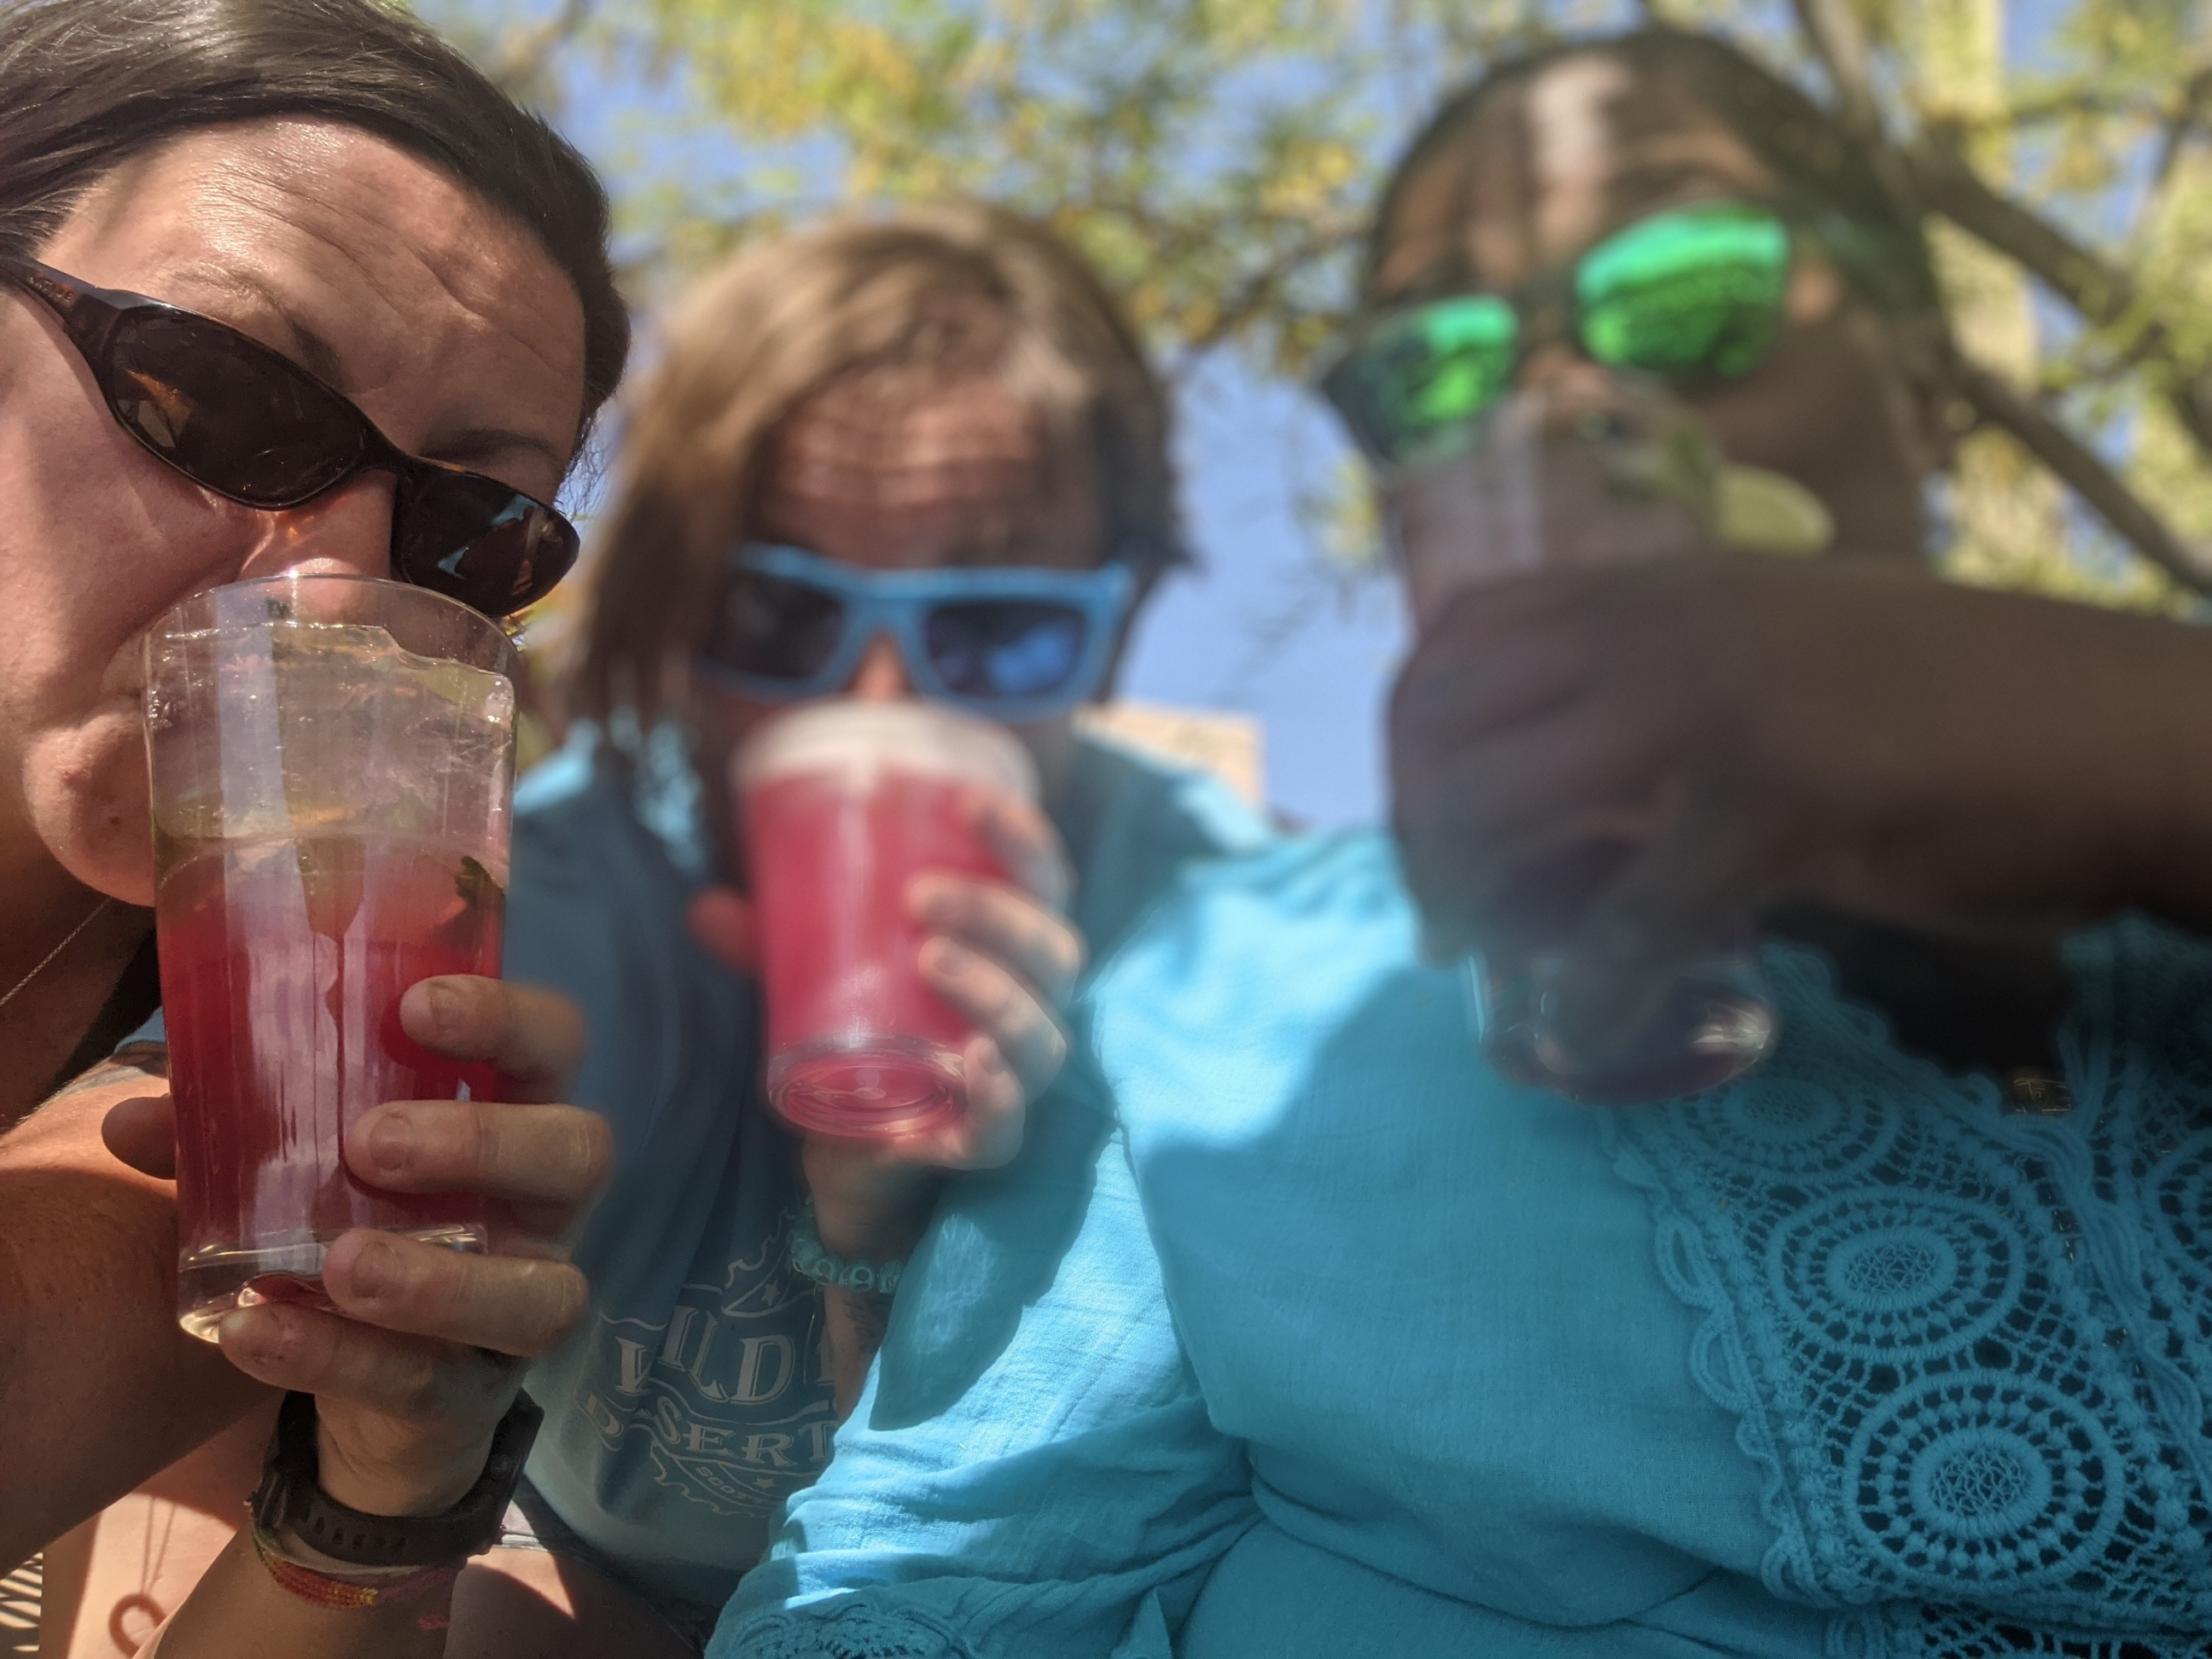 Michelle Craig (left), Laurel Darren (center) and Mirna Valerio enjoy either a Prickly Pear Margarita or Mojito during one of their all-girl talk sessions after another day of mountain biking.